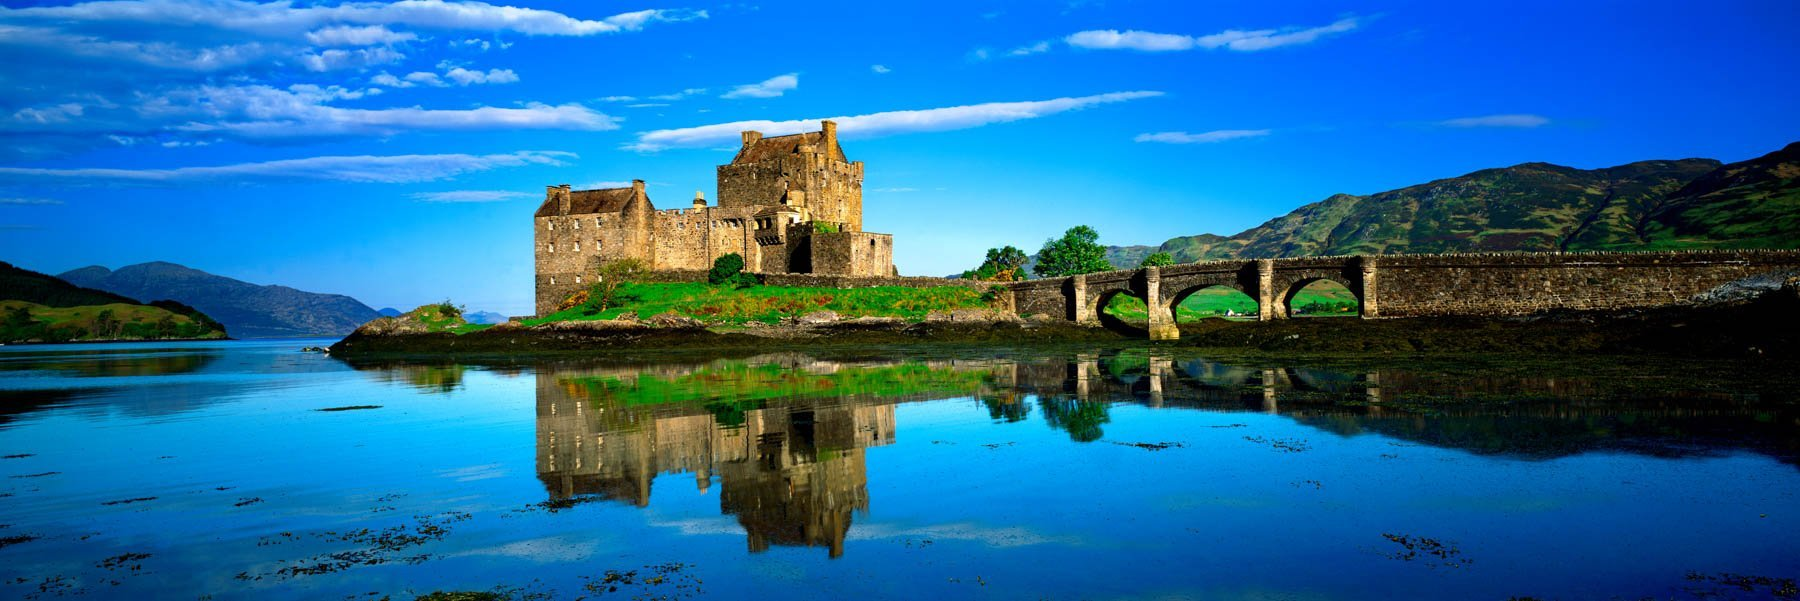 Perfect reflections of Eilean Donan castle in the clear blue lake, Scotland, UK.